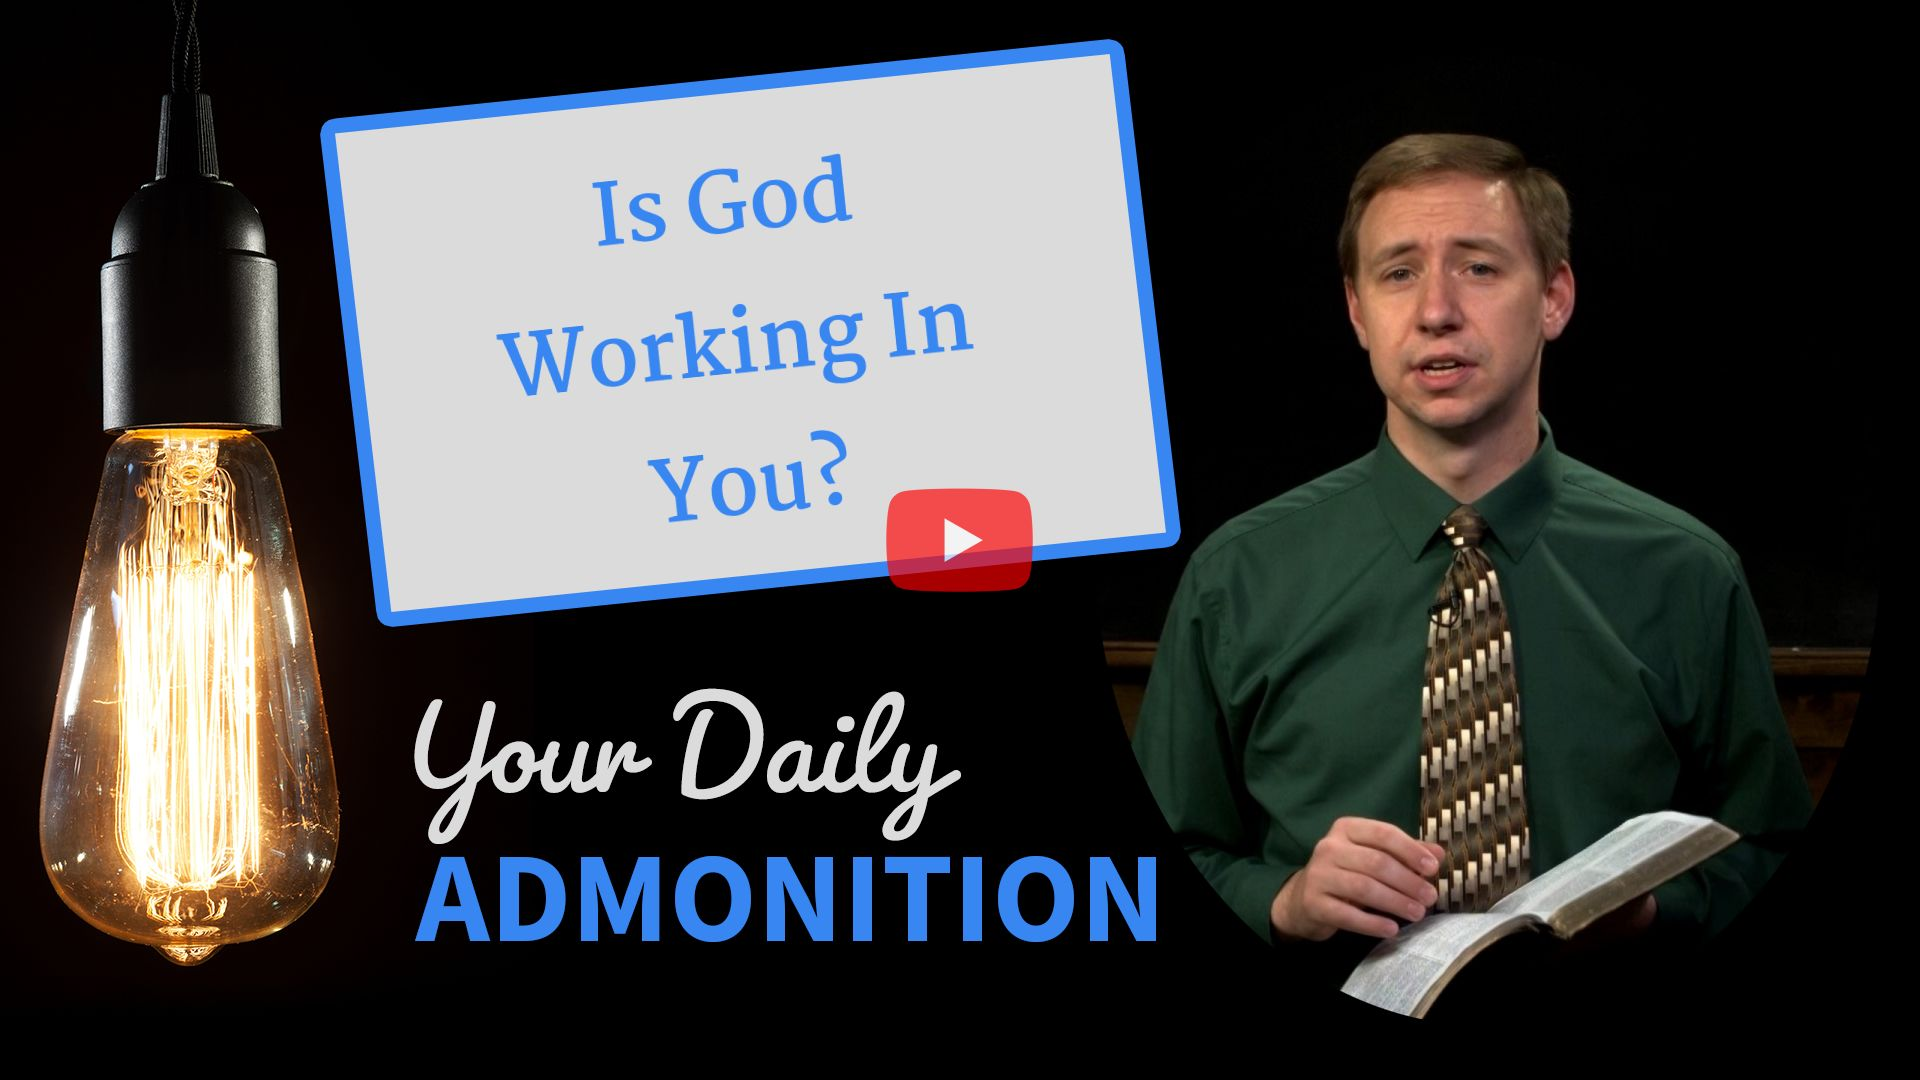 Is God Working In You?